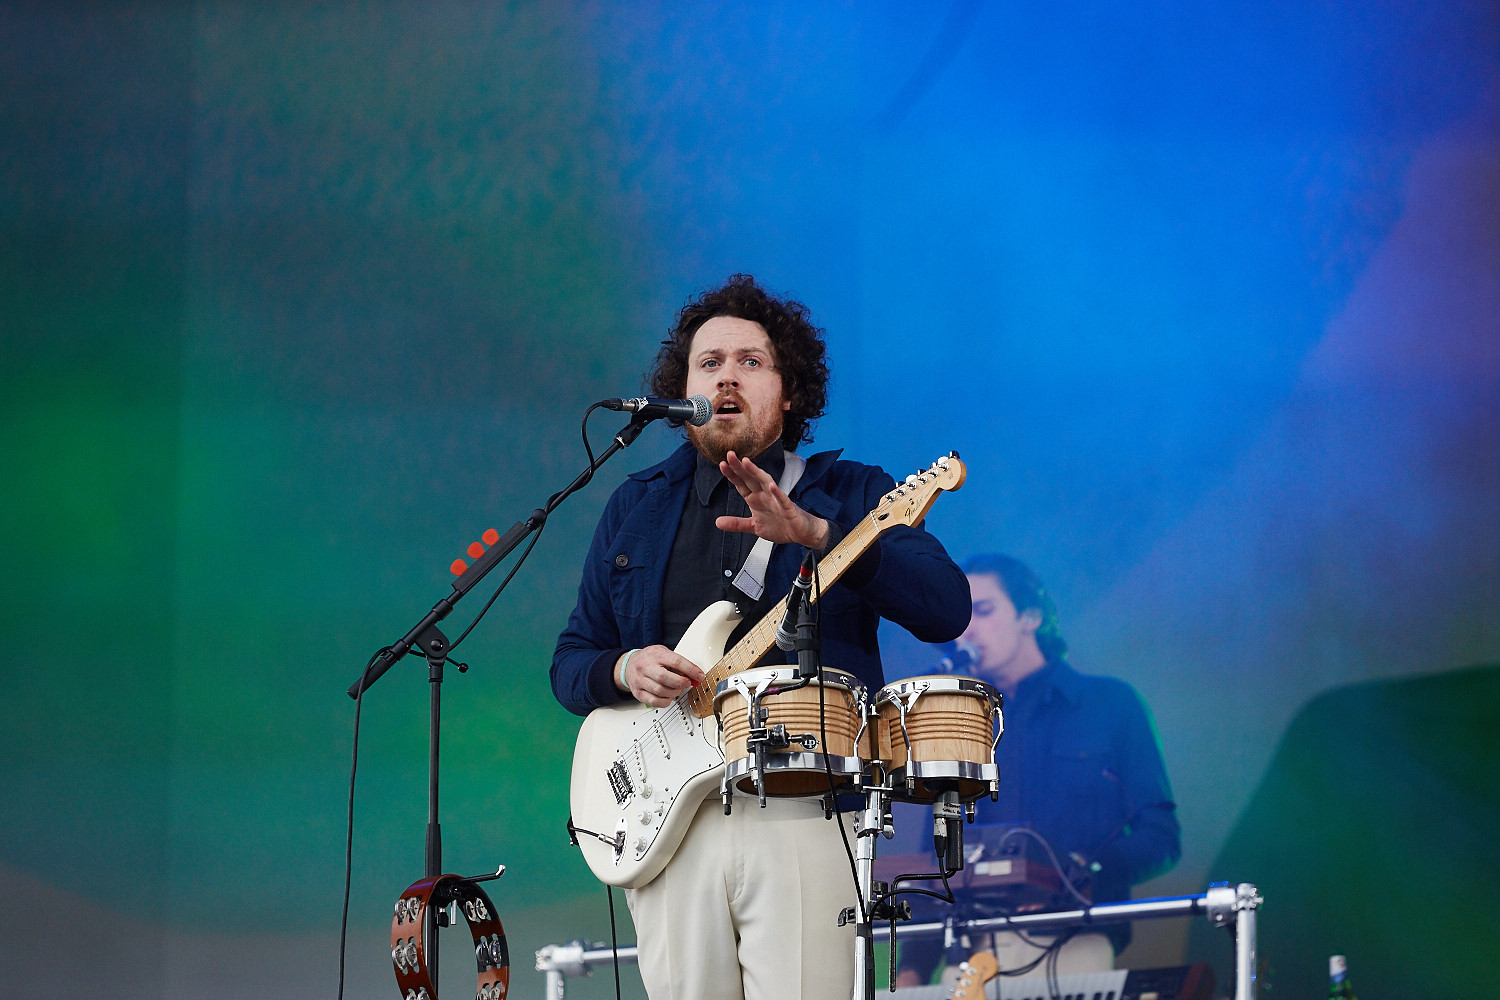 20th June 2015. Metronomy plays Barclaycard British Summertime in London's Hyde Park.